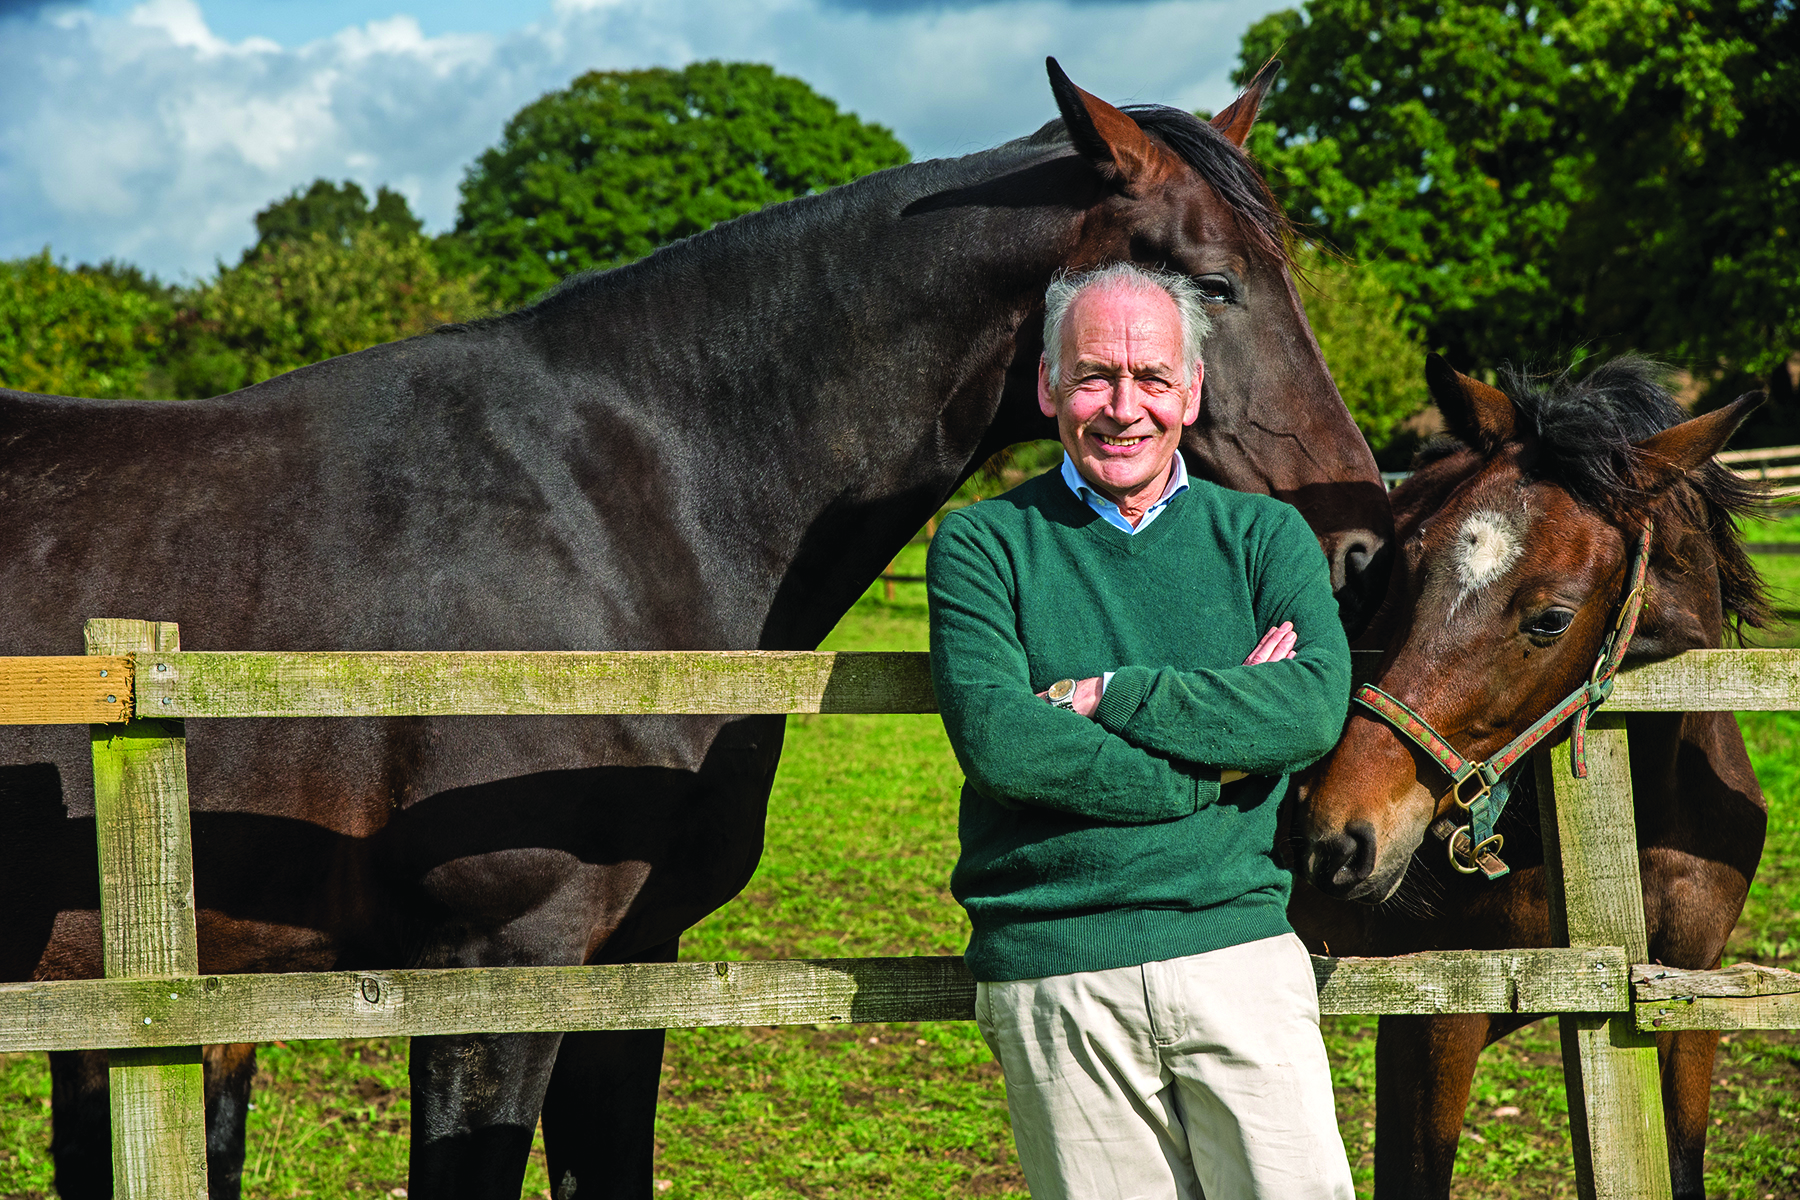 Alastair has 15 horses and ponies Pic: ©Brooke / Stella Scordellis